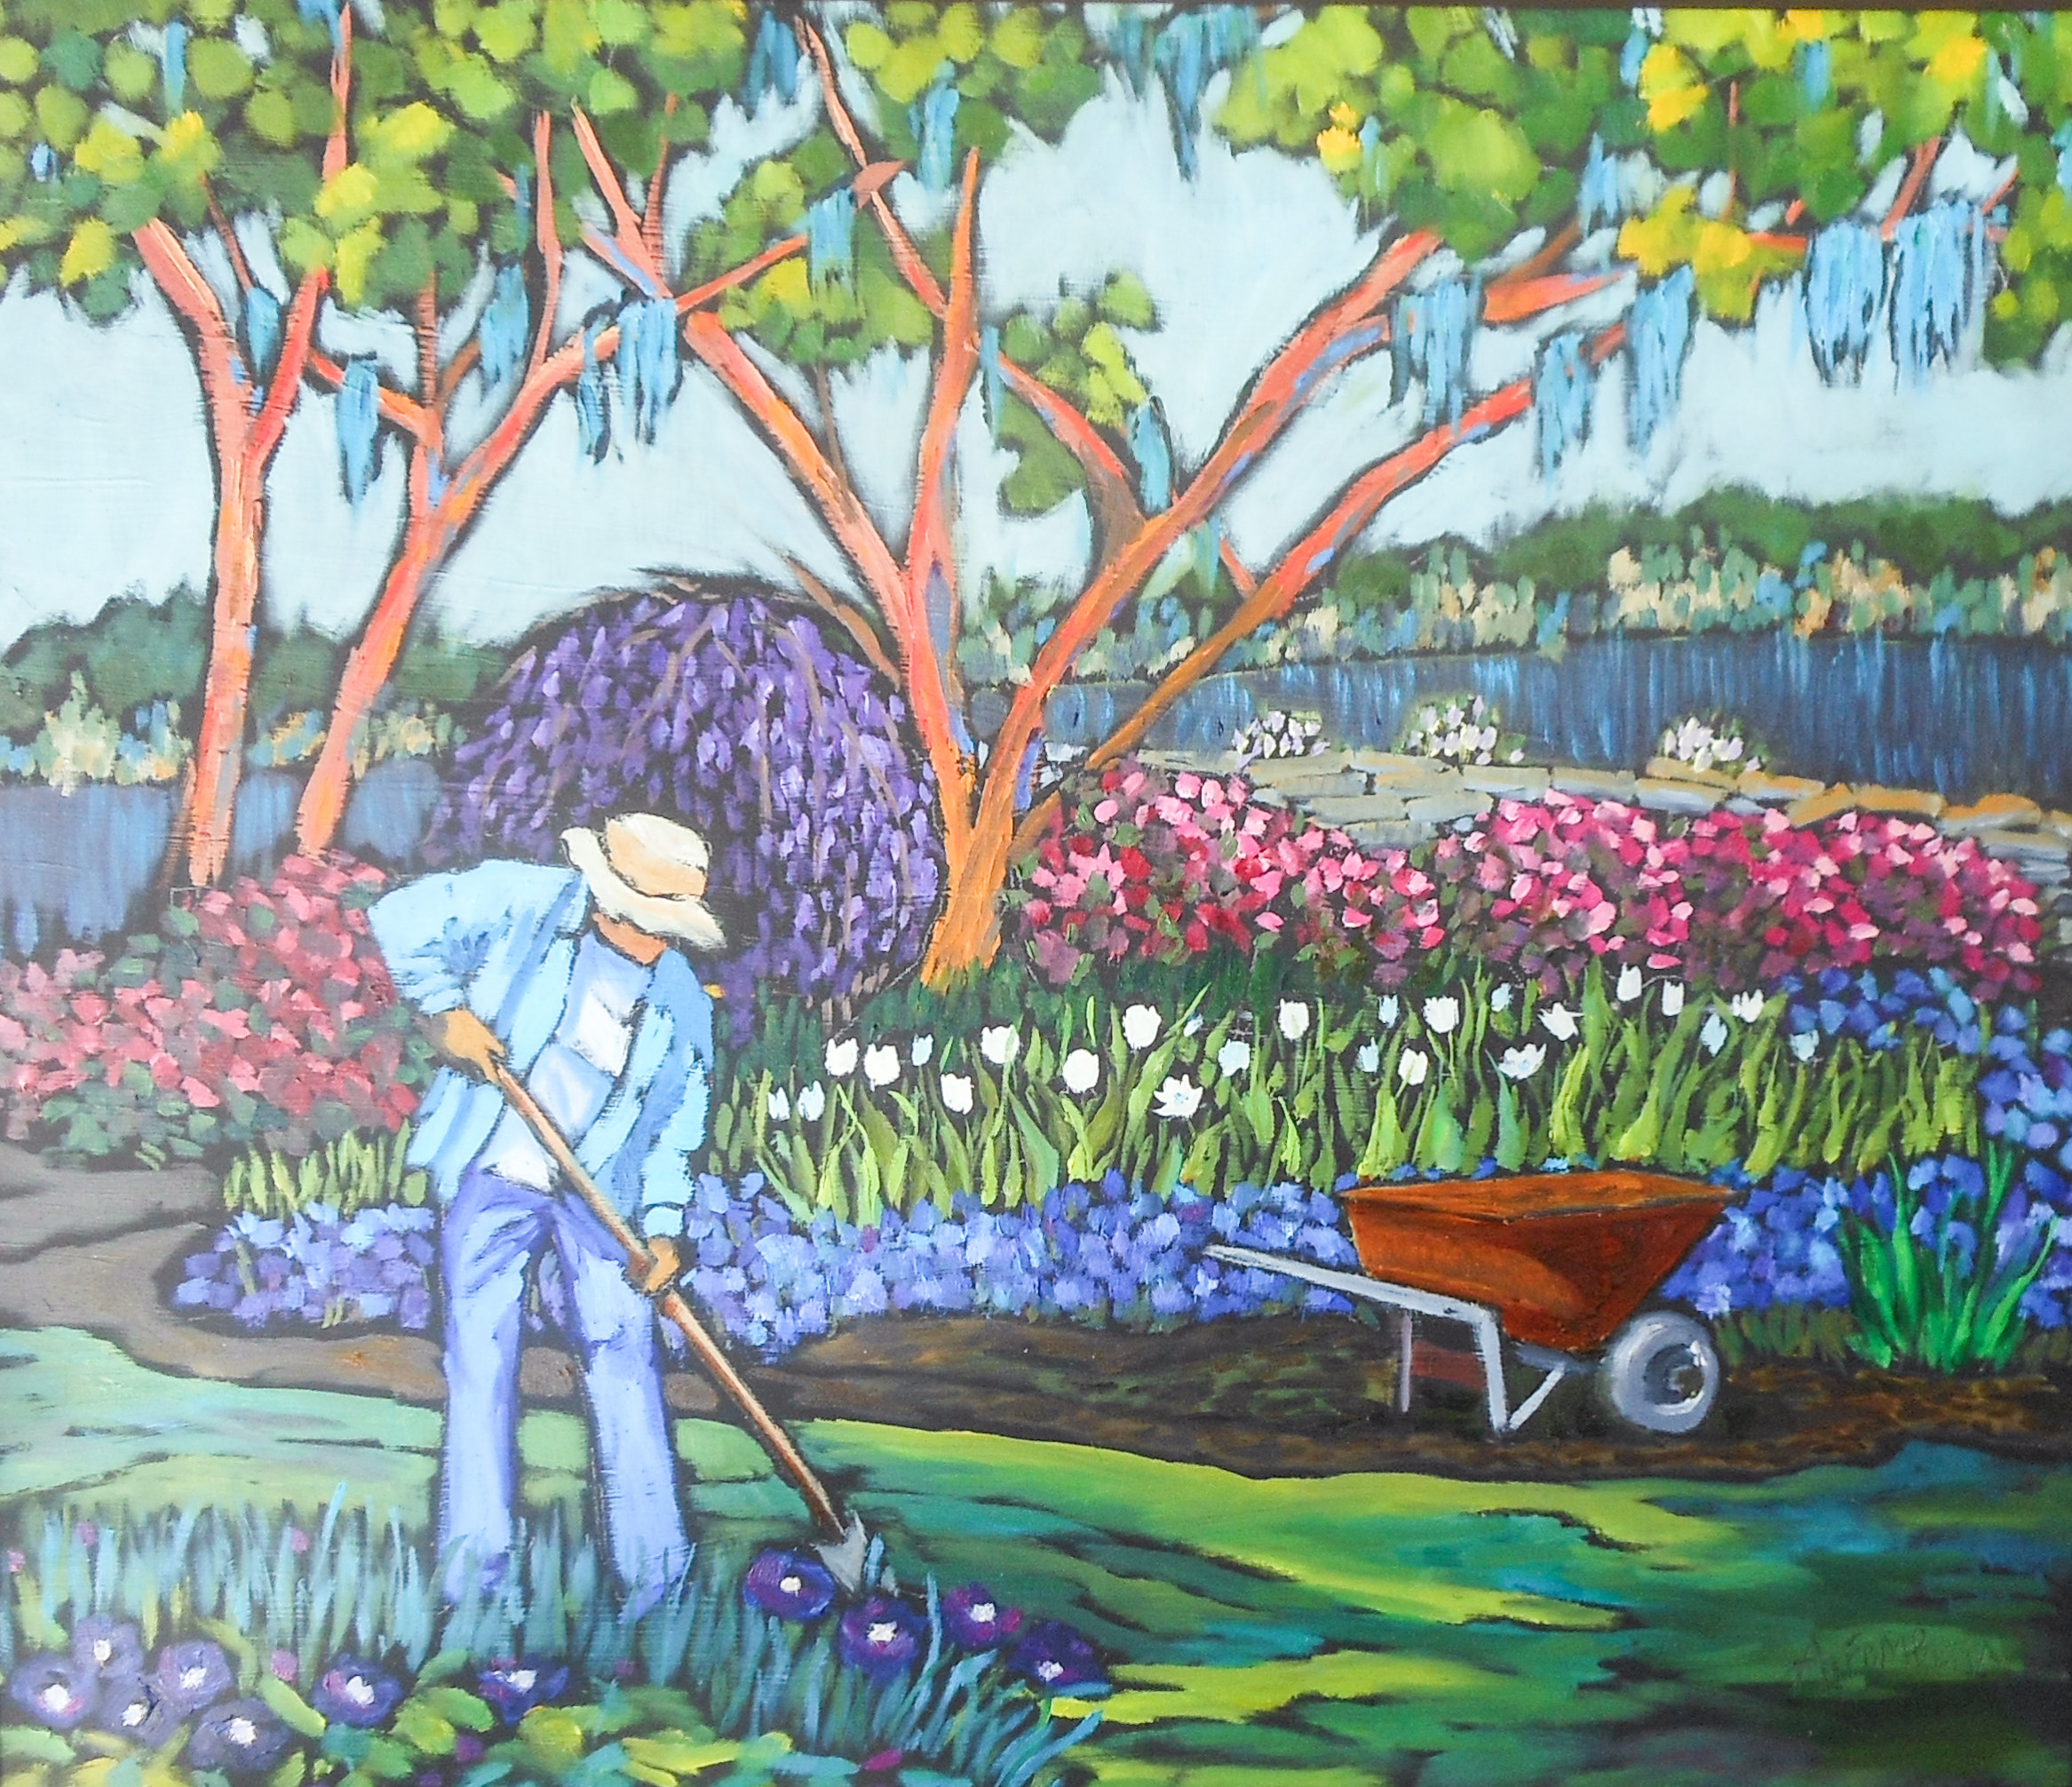 The Gardener at Work